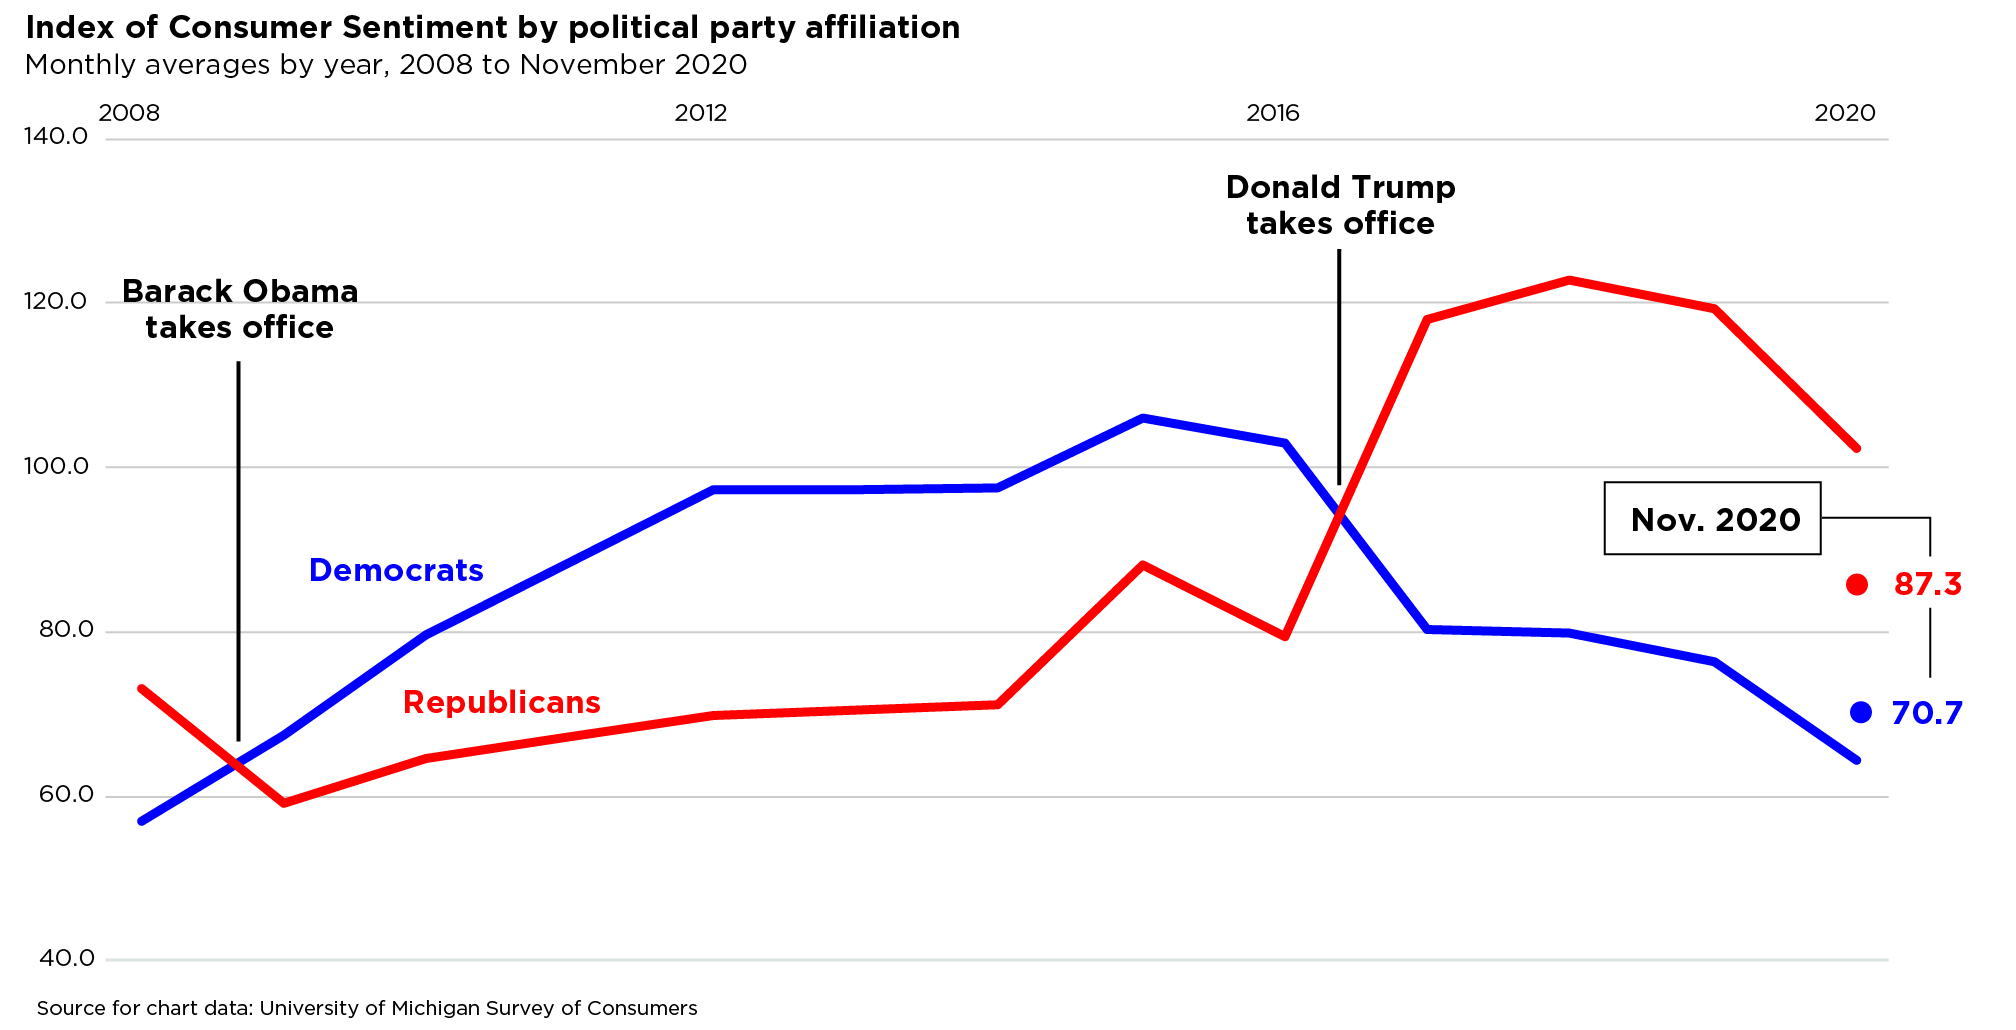 chart depicting index of consumer sentiment by political party affiliation